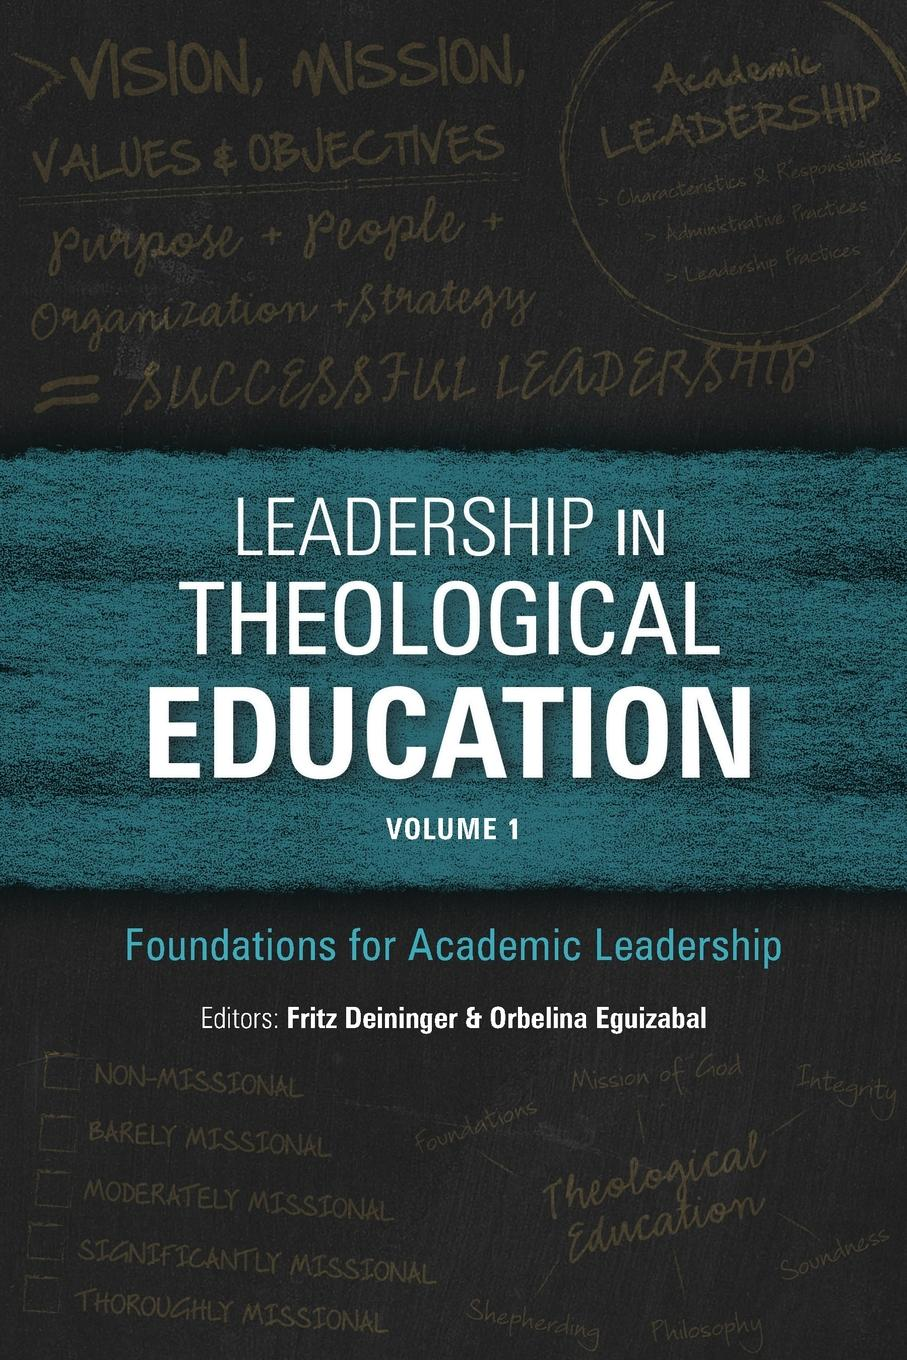 Leadership in Theological Education, Volume 1. Foundations for Academic Leadership hunt penelepe c development for academic leaders a practical guide for fundraising success